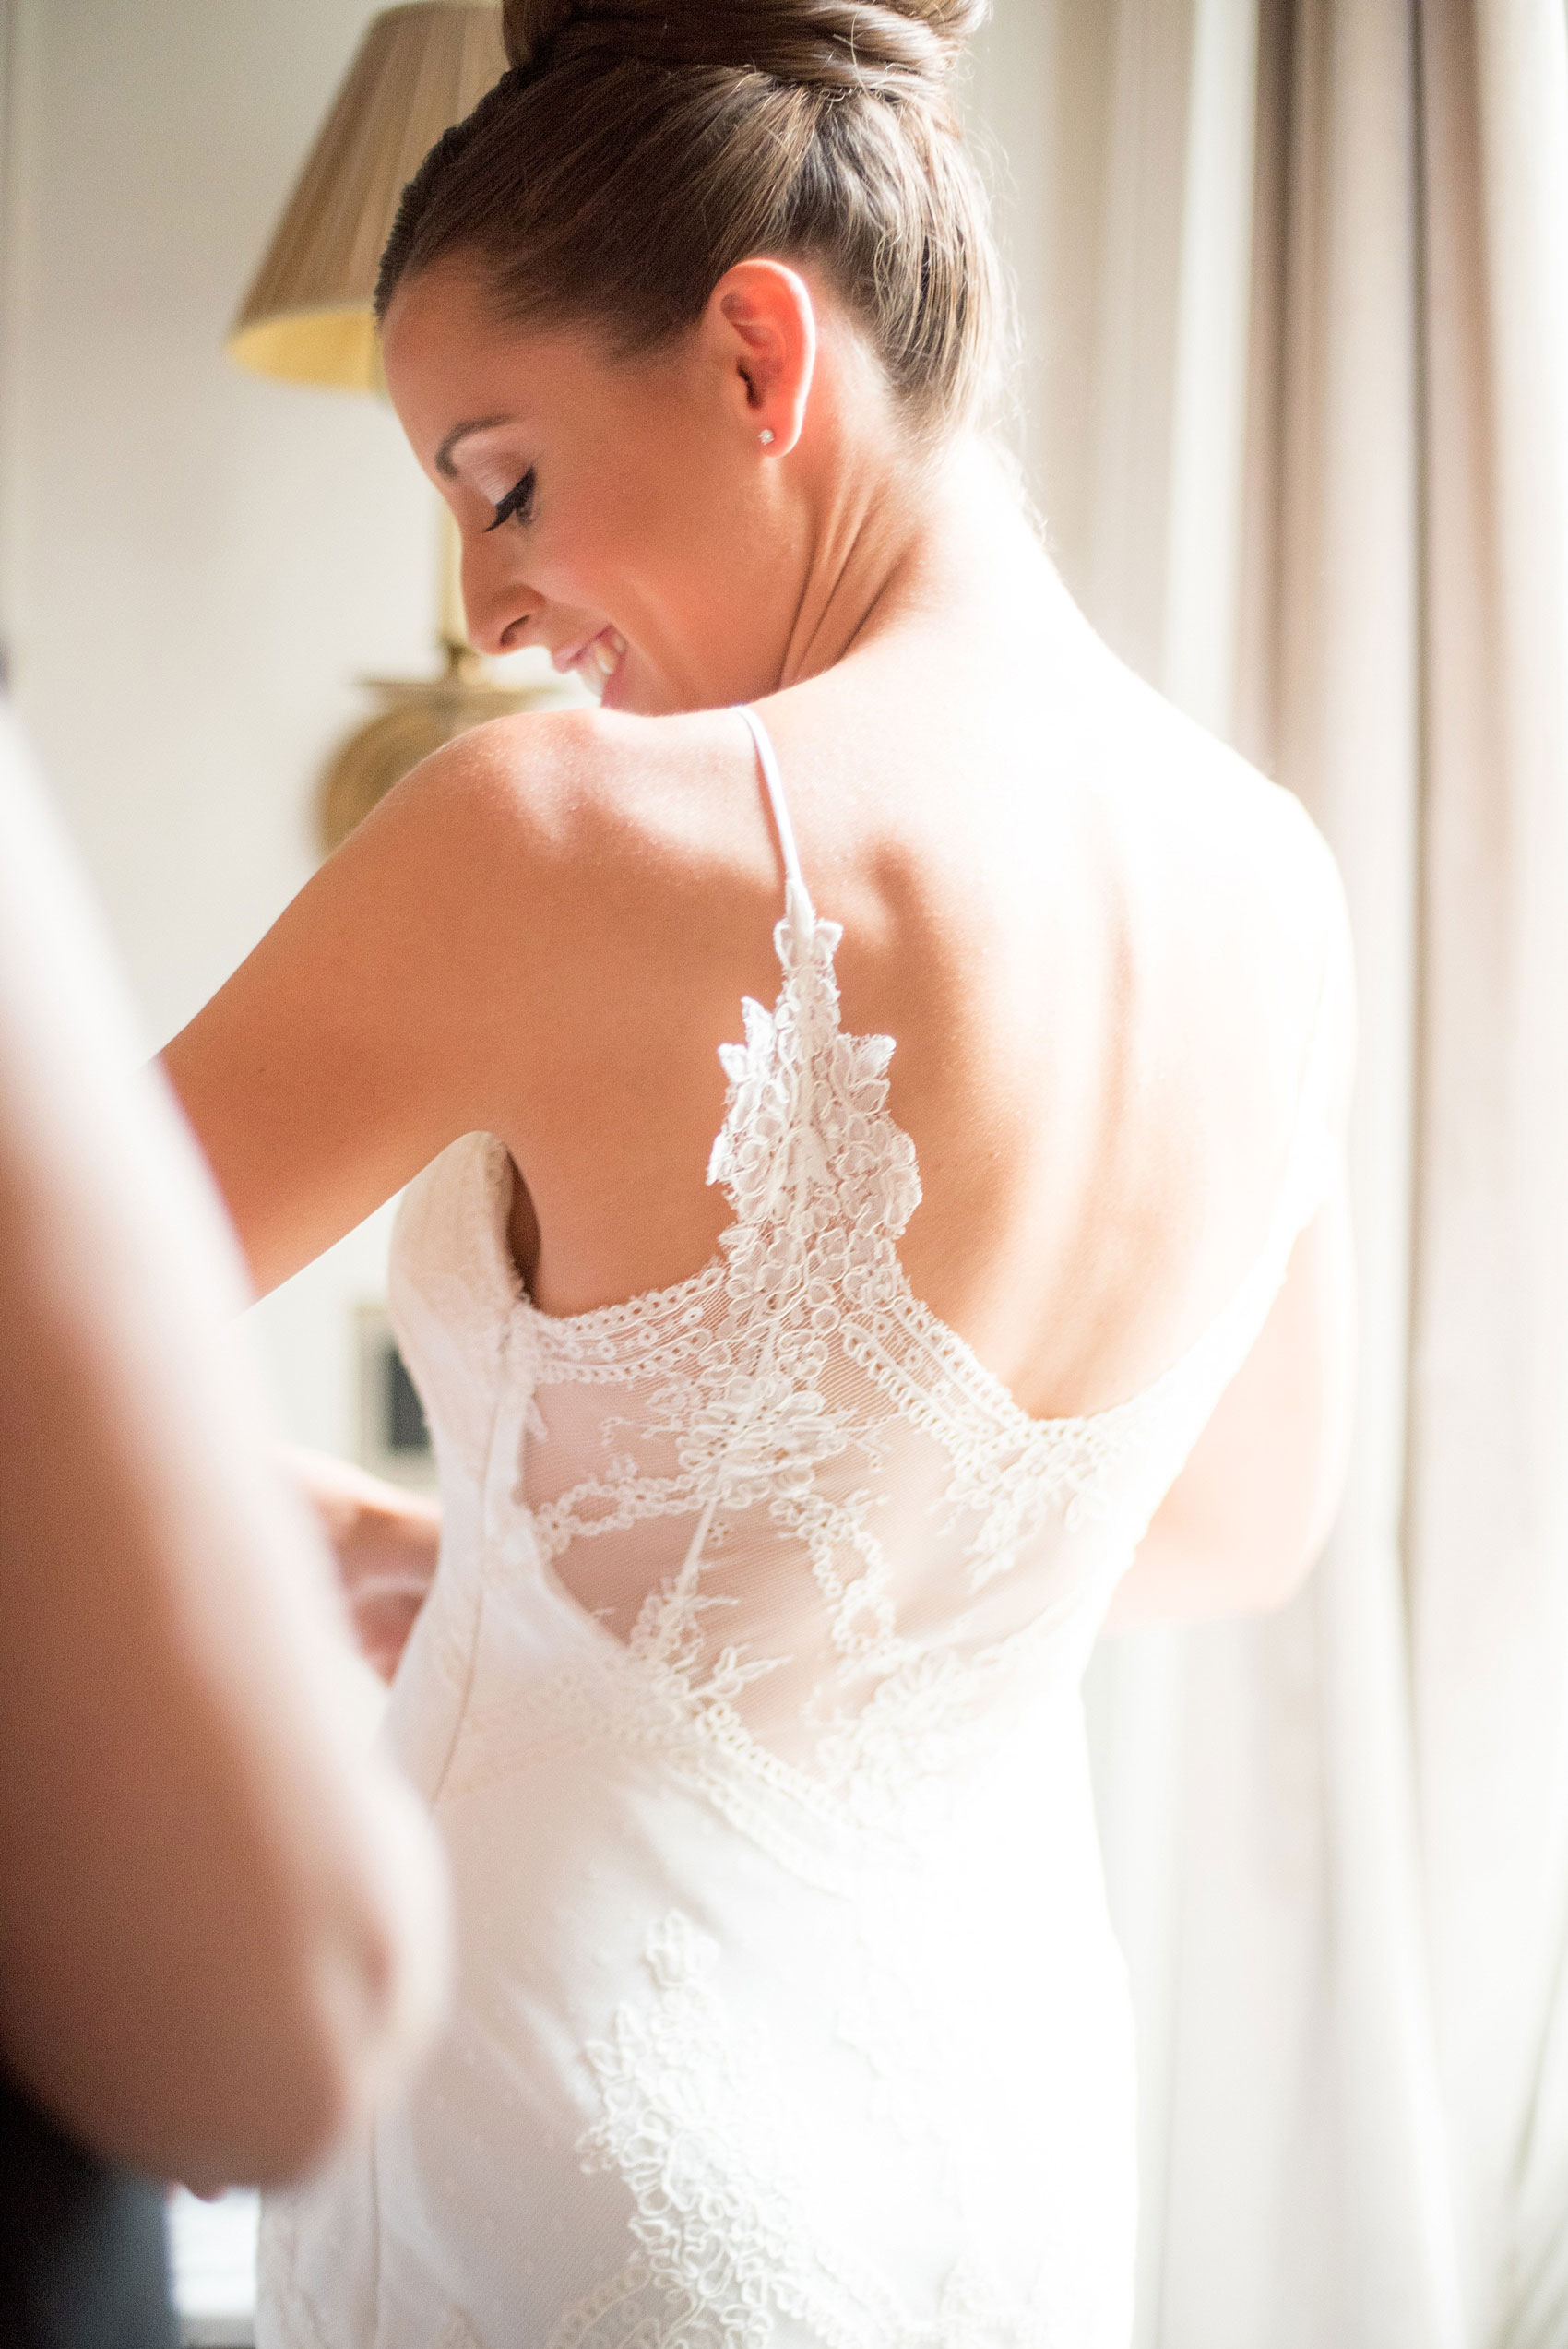 Mikkel Paige Photography captures a luxury wedding in NYC. The bride's mom helps her get dressed in her David Fielden wedding from Kleinfeld's at The Marlton Hotel.